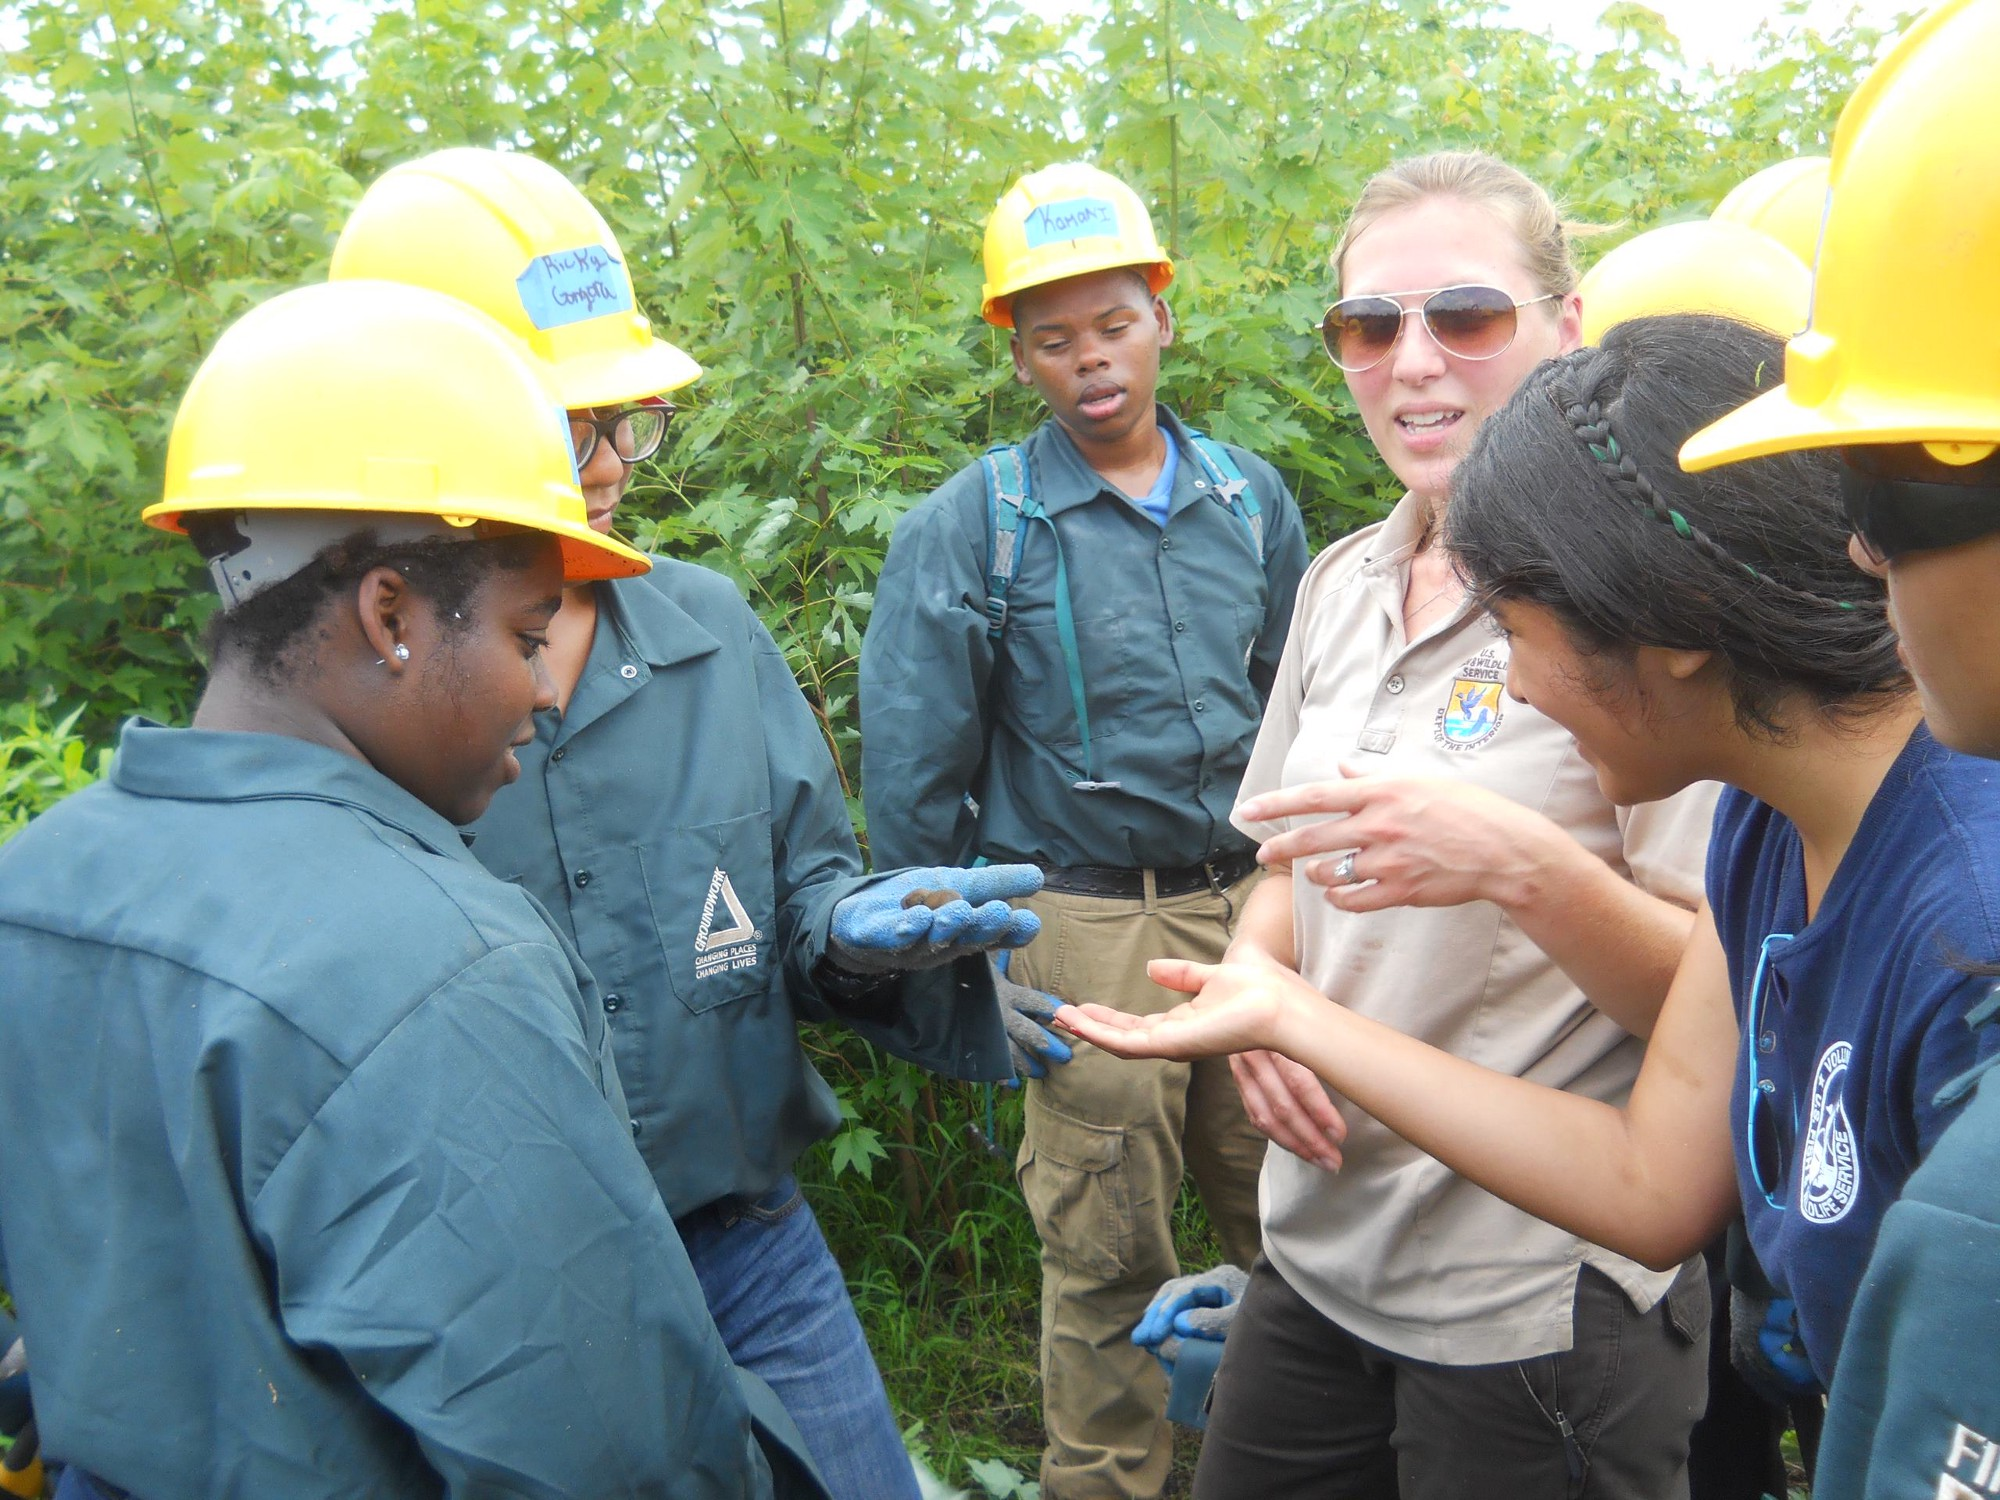 Woman in sunglasses and a Service pol talking with a group of students in hard hats and green uniform shirts outdoors